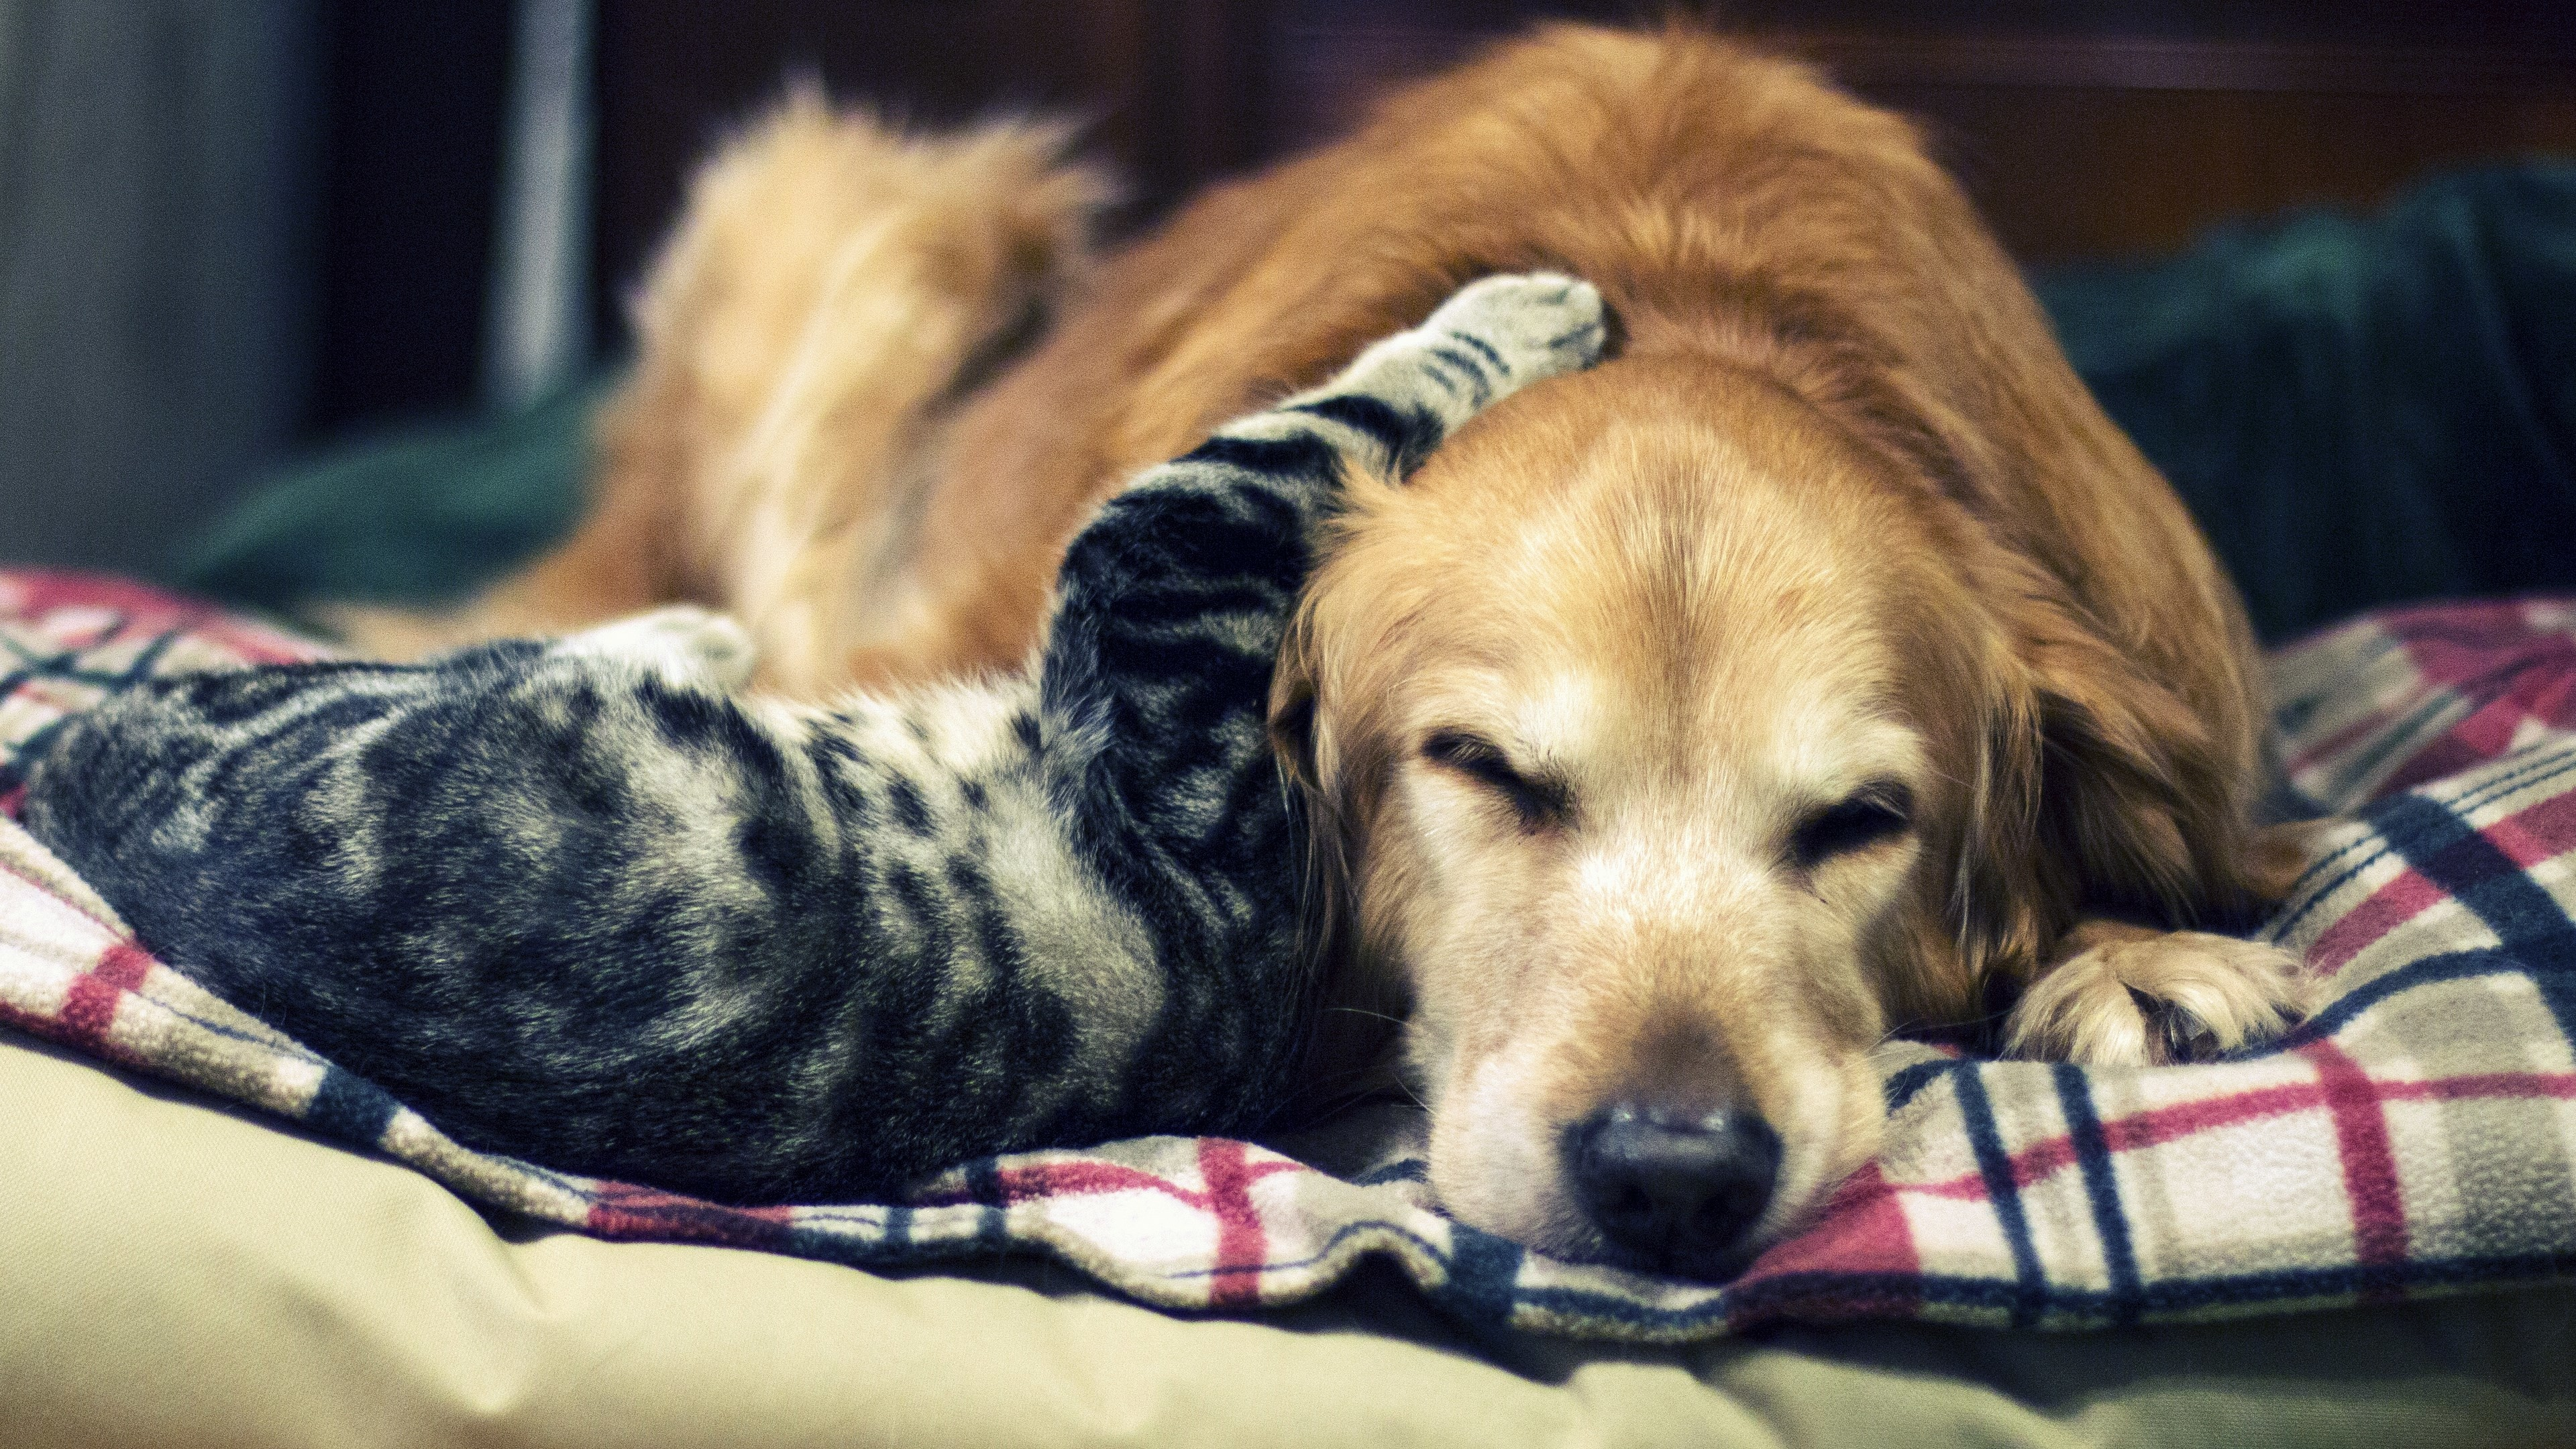 cat and dog wallpaper 183��